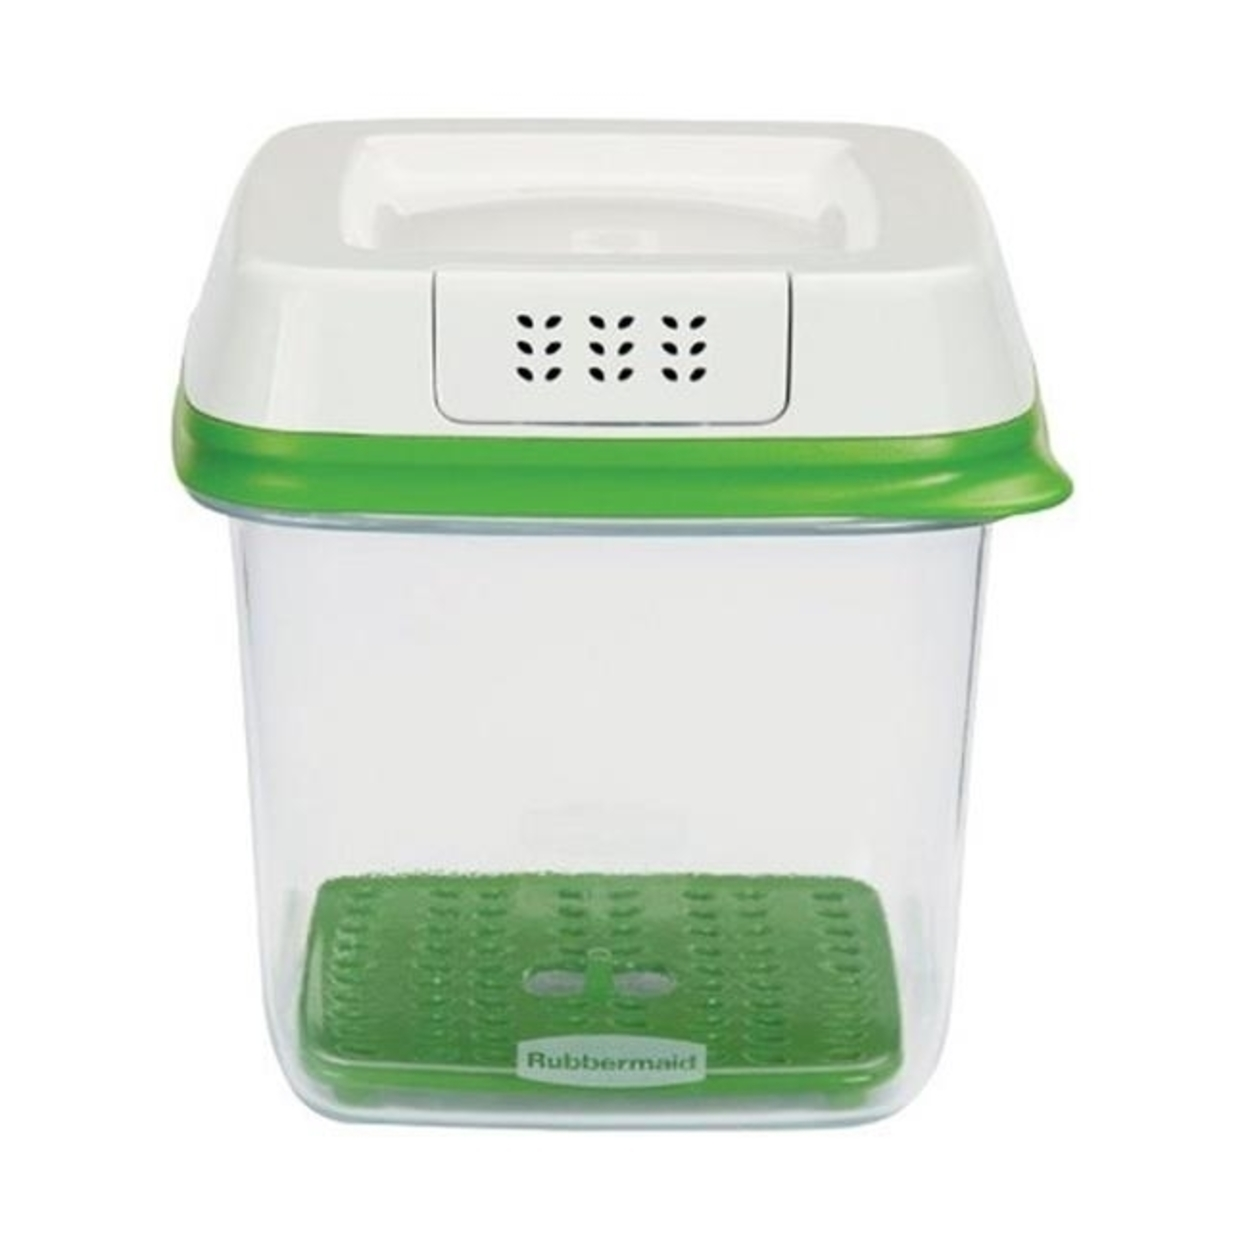 Rubbermaid 1920478 Produce Keeper 2.3 Cups 5a39a04ce224616c58155ac6